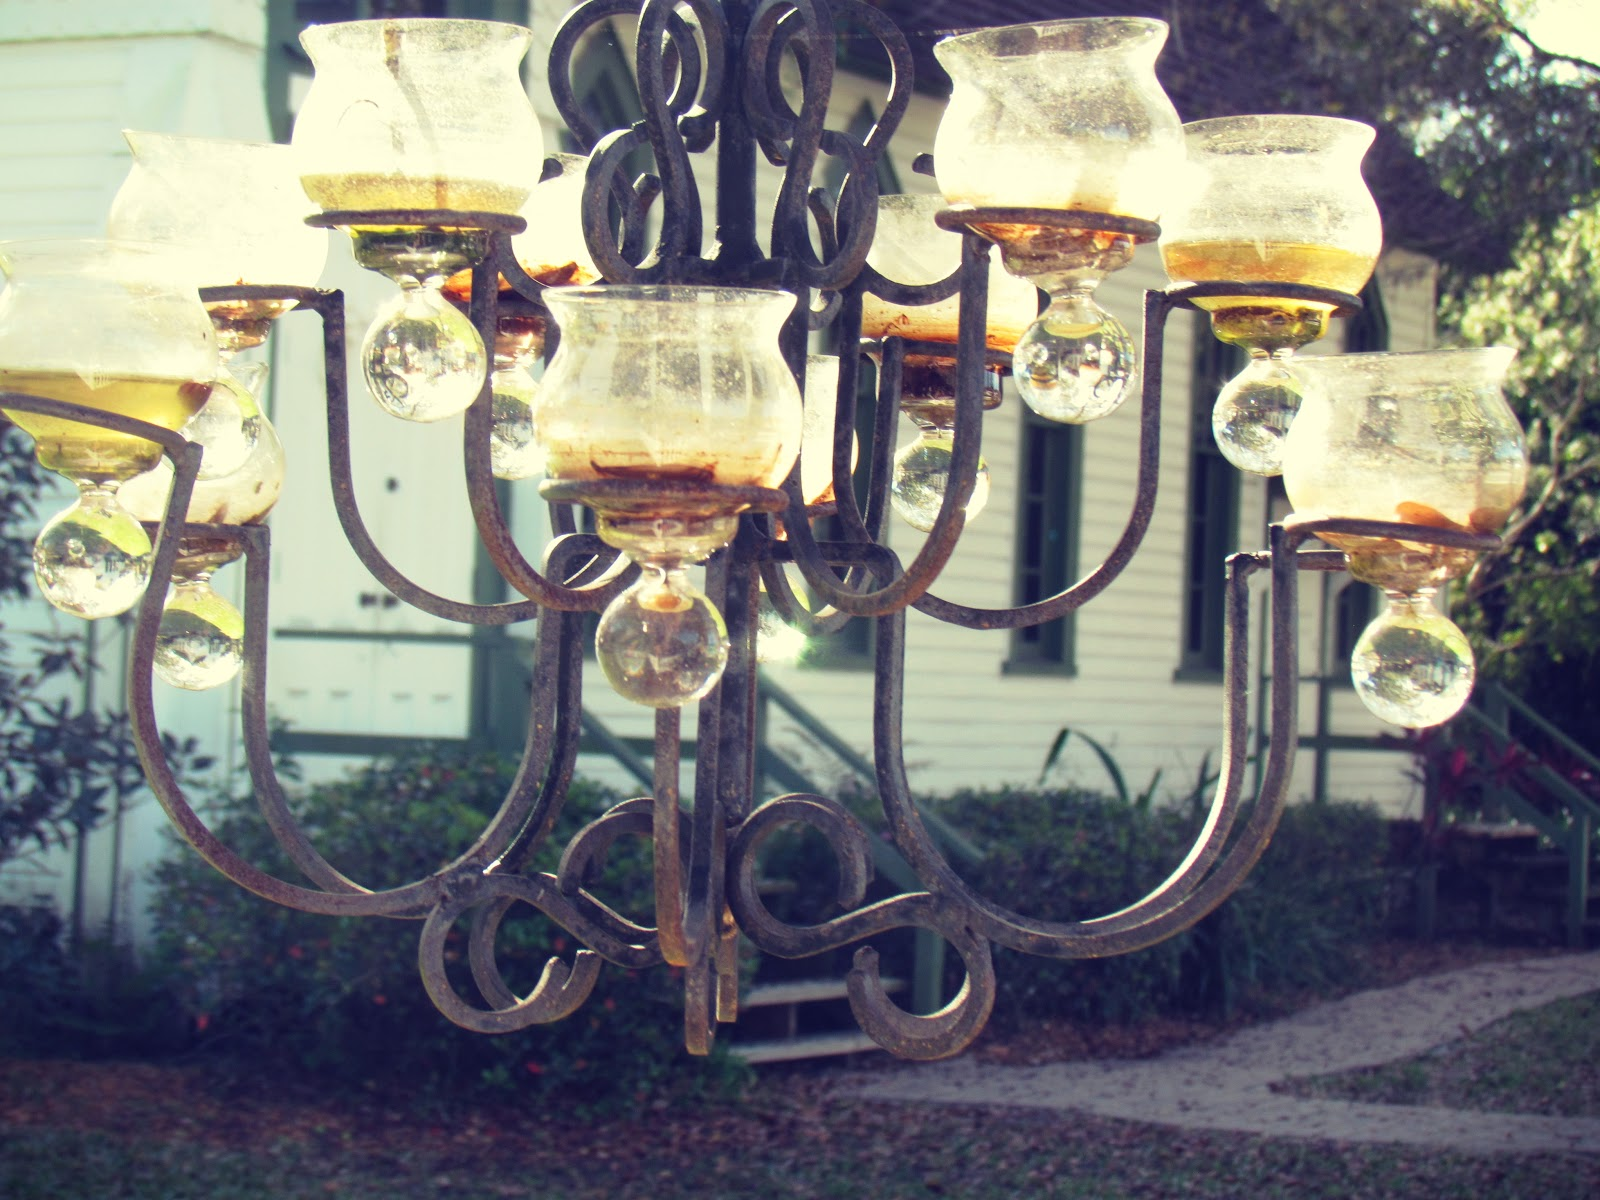 An outdoor wedding chapel with outdoor mood lighting in the butterfly gardens of Hammock Park in Dunedin, Florida